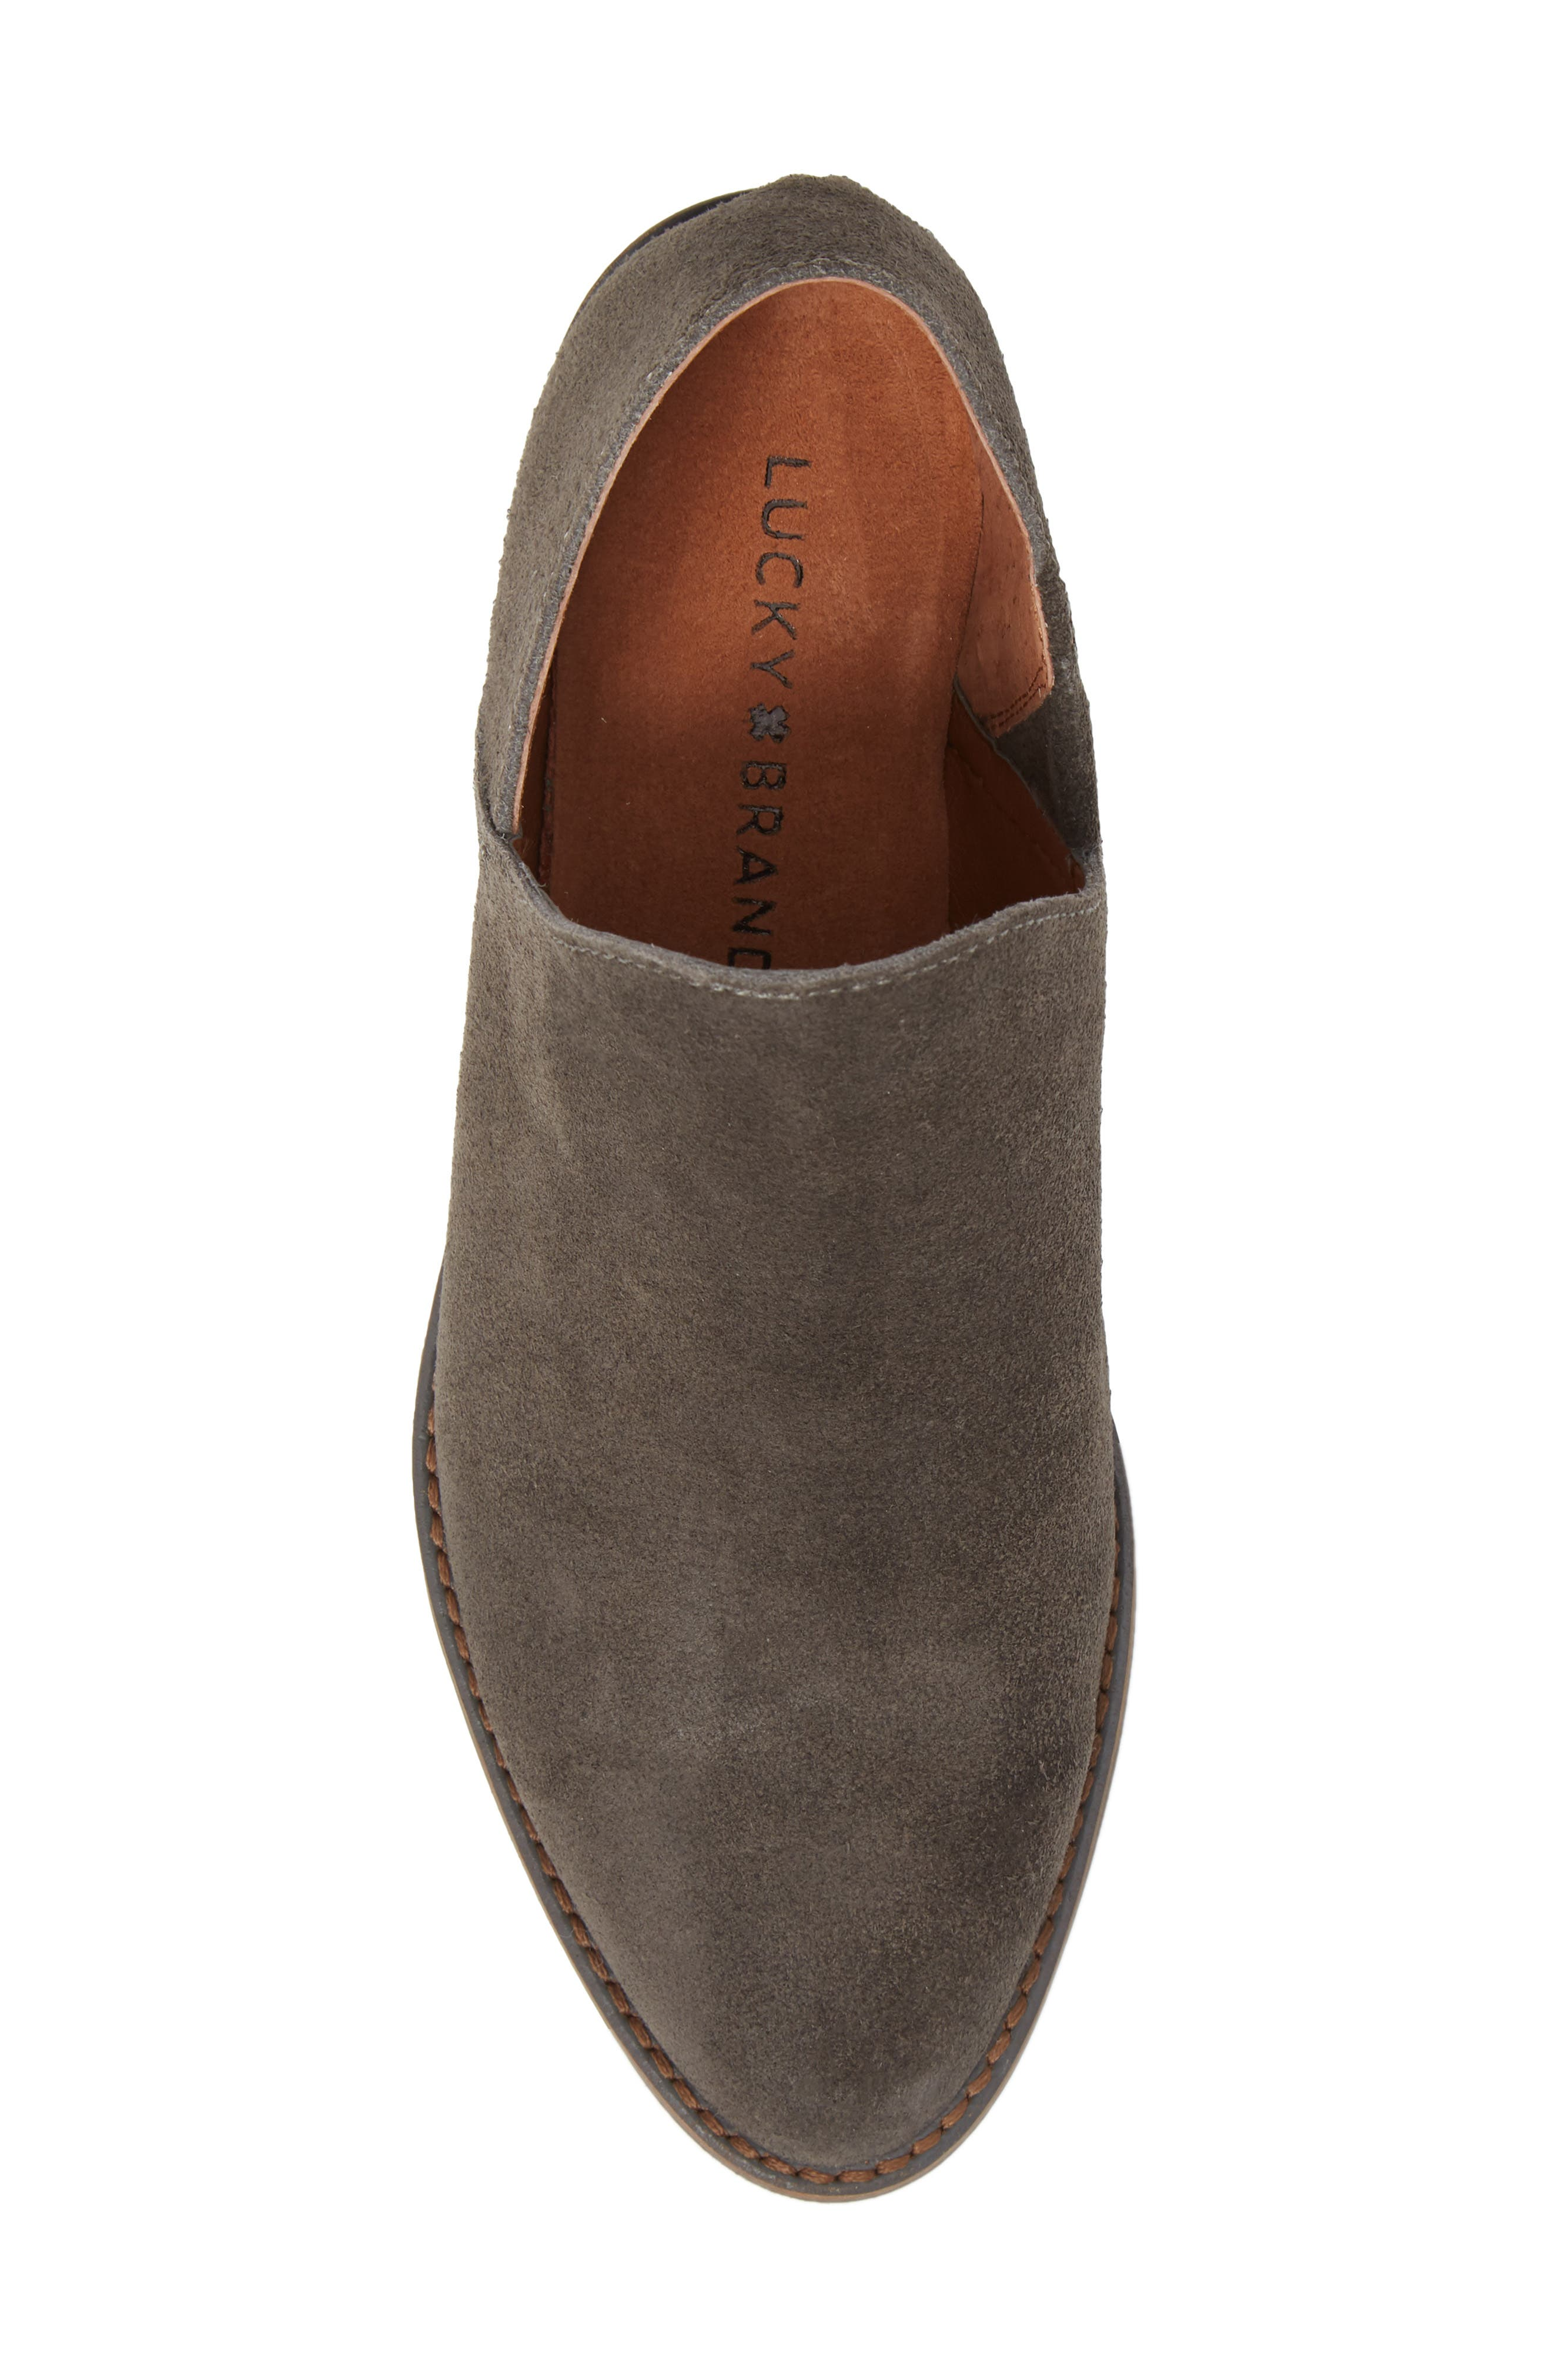 Fausst Bootie,                             Alternate thumbnail 5, color,                             PERISCOPE LEATHER